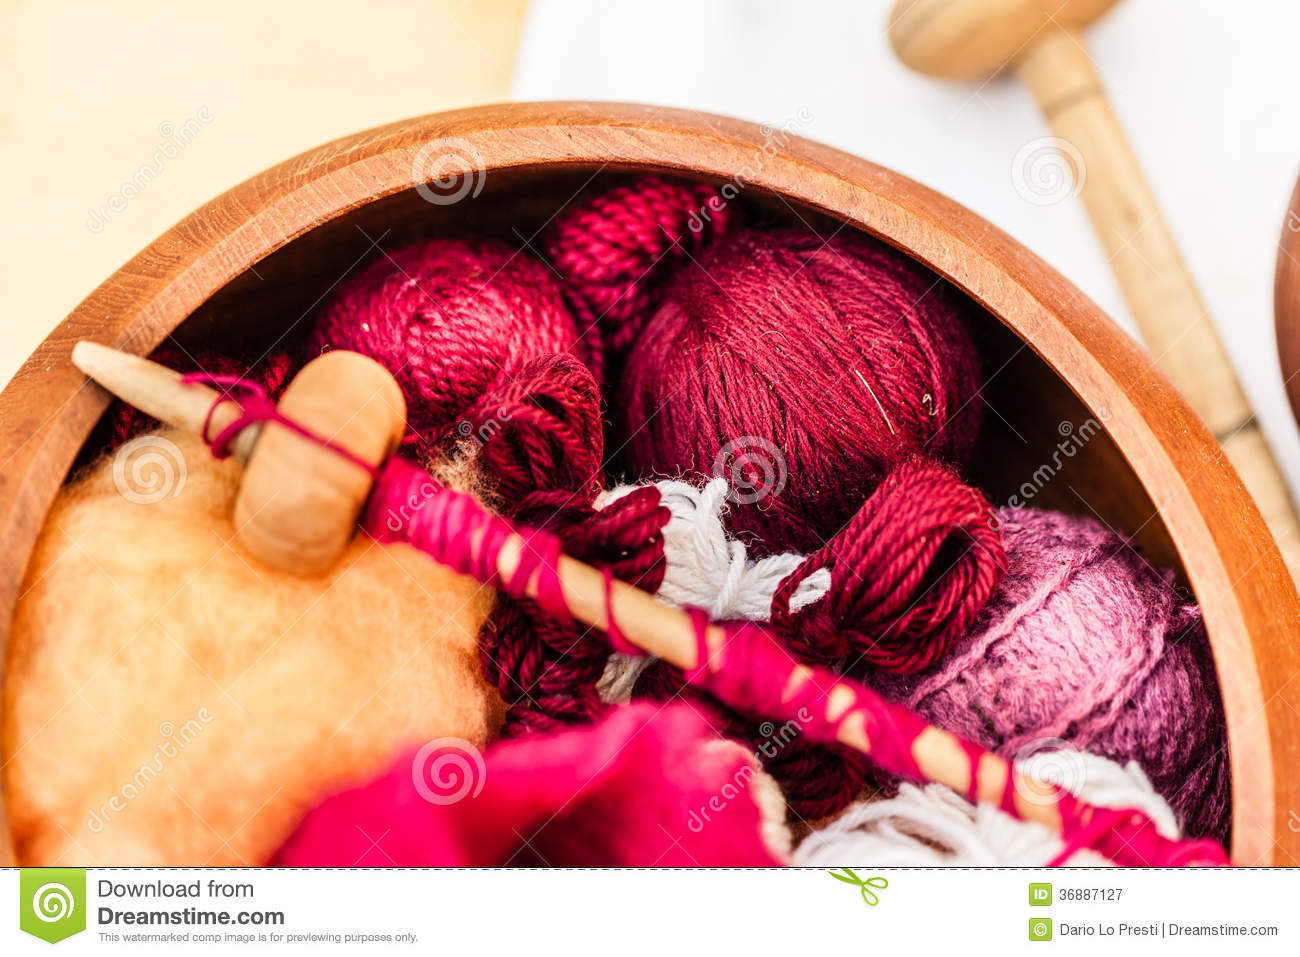 knitting royalty free stock photography image 36887127